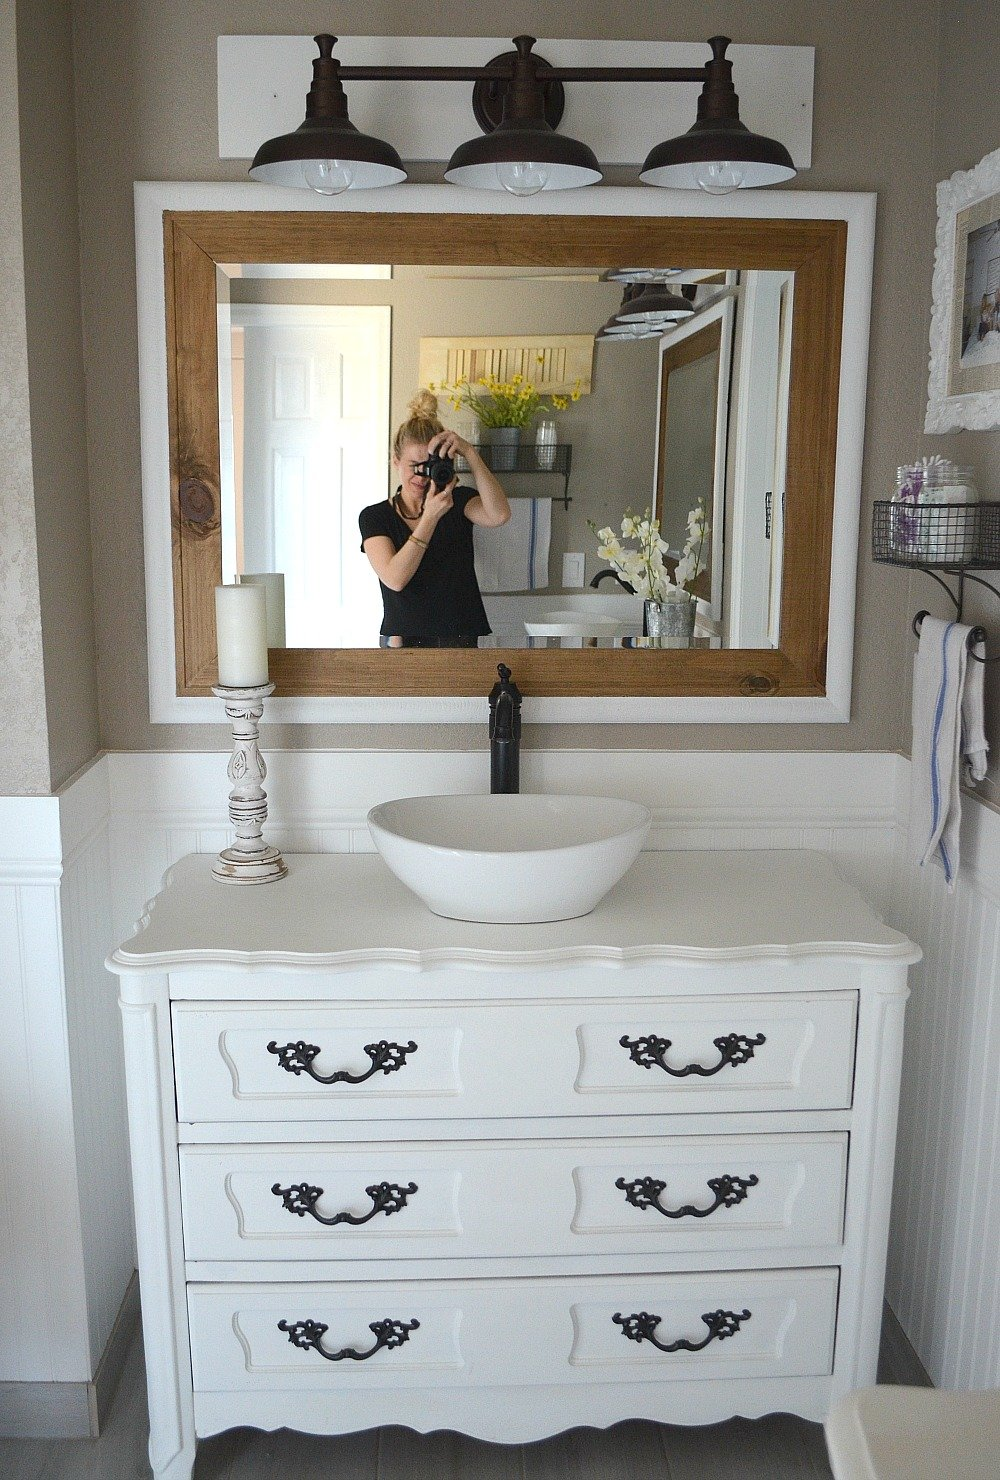 Stupendous Honest Review Of My Chalk Painted Bathroom Vanities Download Free Architecture Designs Intelgarnamadebymaigaardcom